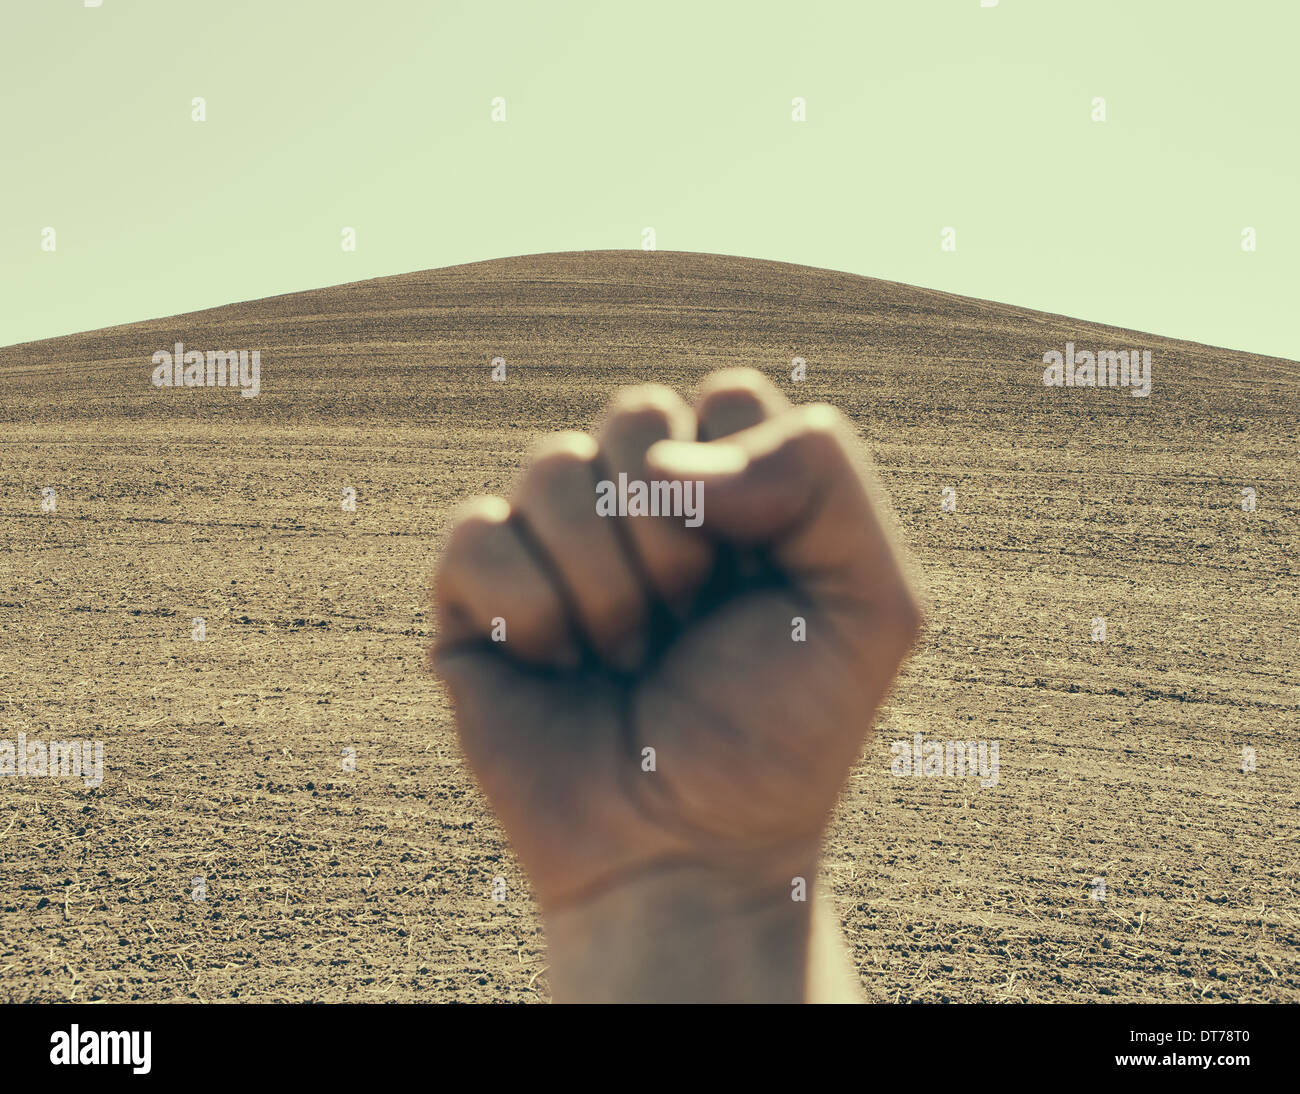 A hand bunched up and making a fist, against the background of a ploughed field and farmland. - Stock Image